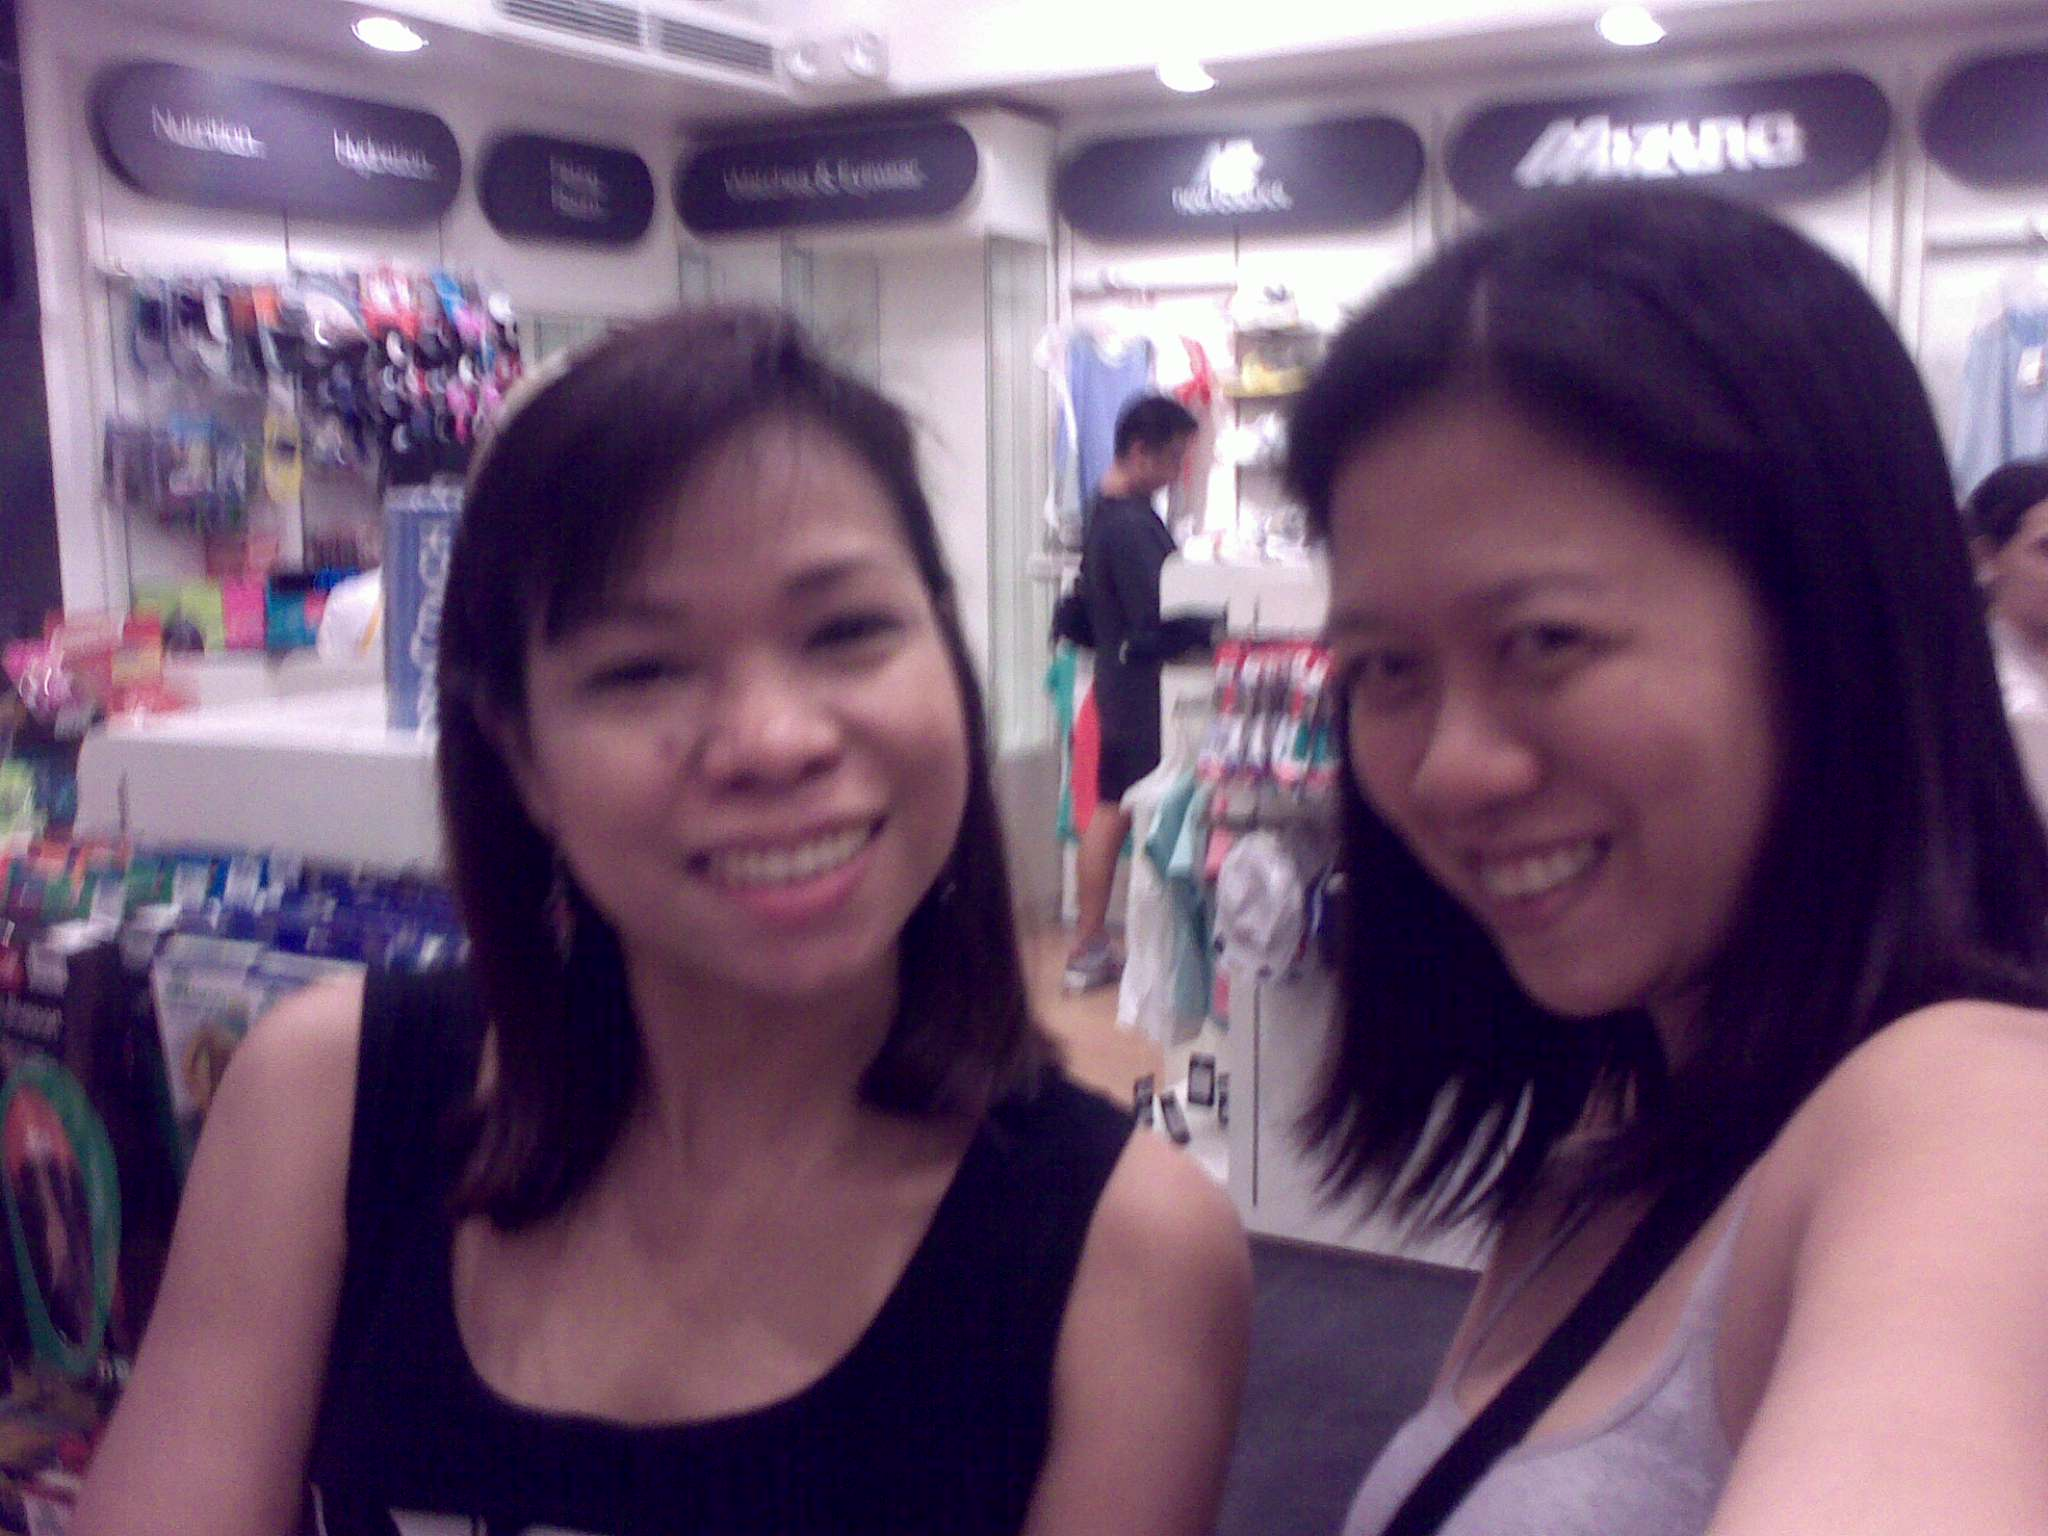 vero (after spending P8K for her new running shoes) & me (yey! vero might be my running buddy soon)